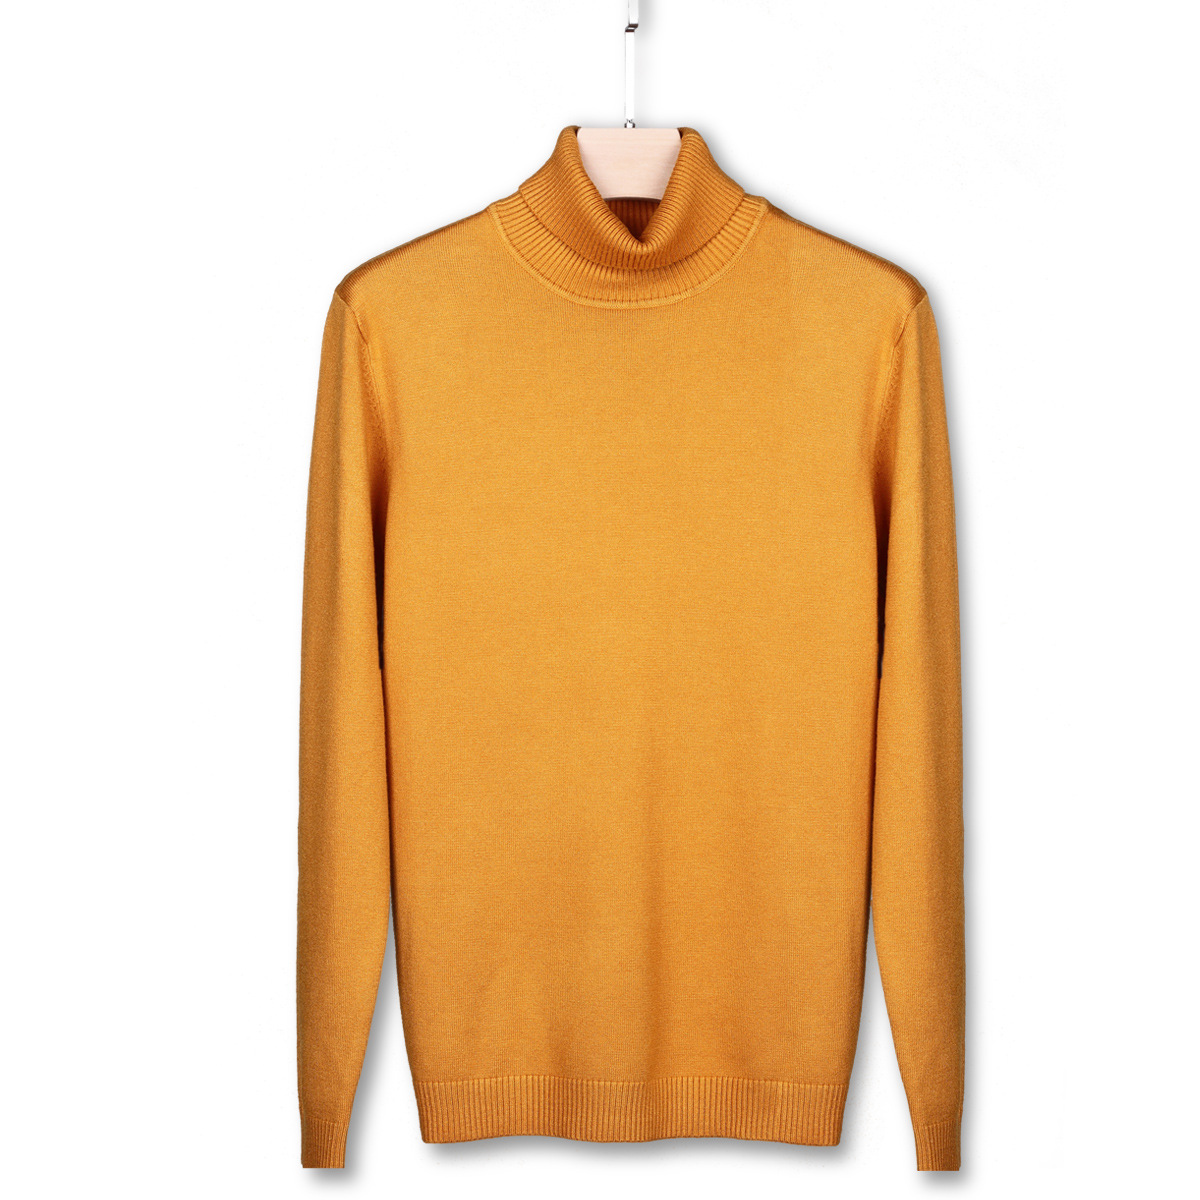 Autumn Knitwear Cute Yellow Ribbed Sweater Male Turtleneck Men High Neck Top Boys Oversized Colorful Sweater Knitted Pullover